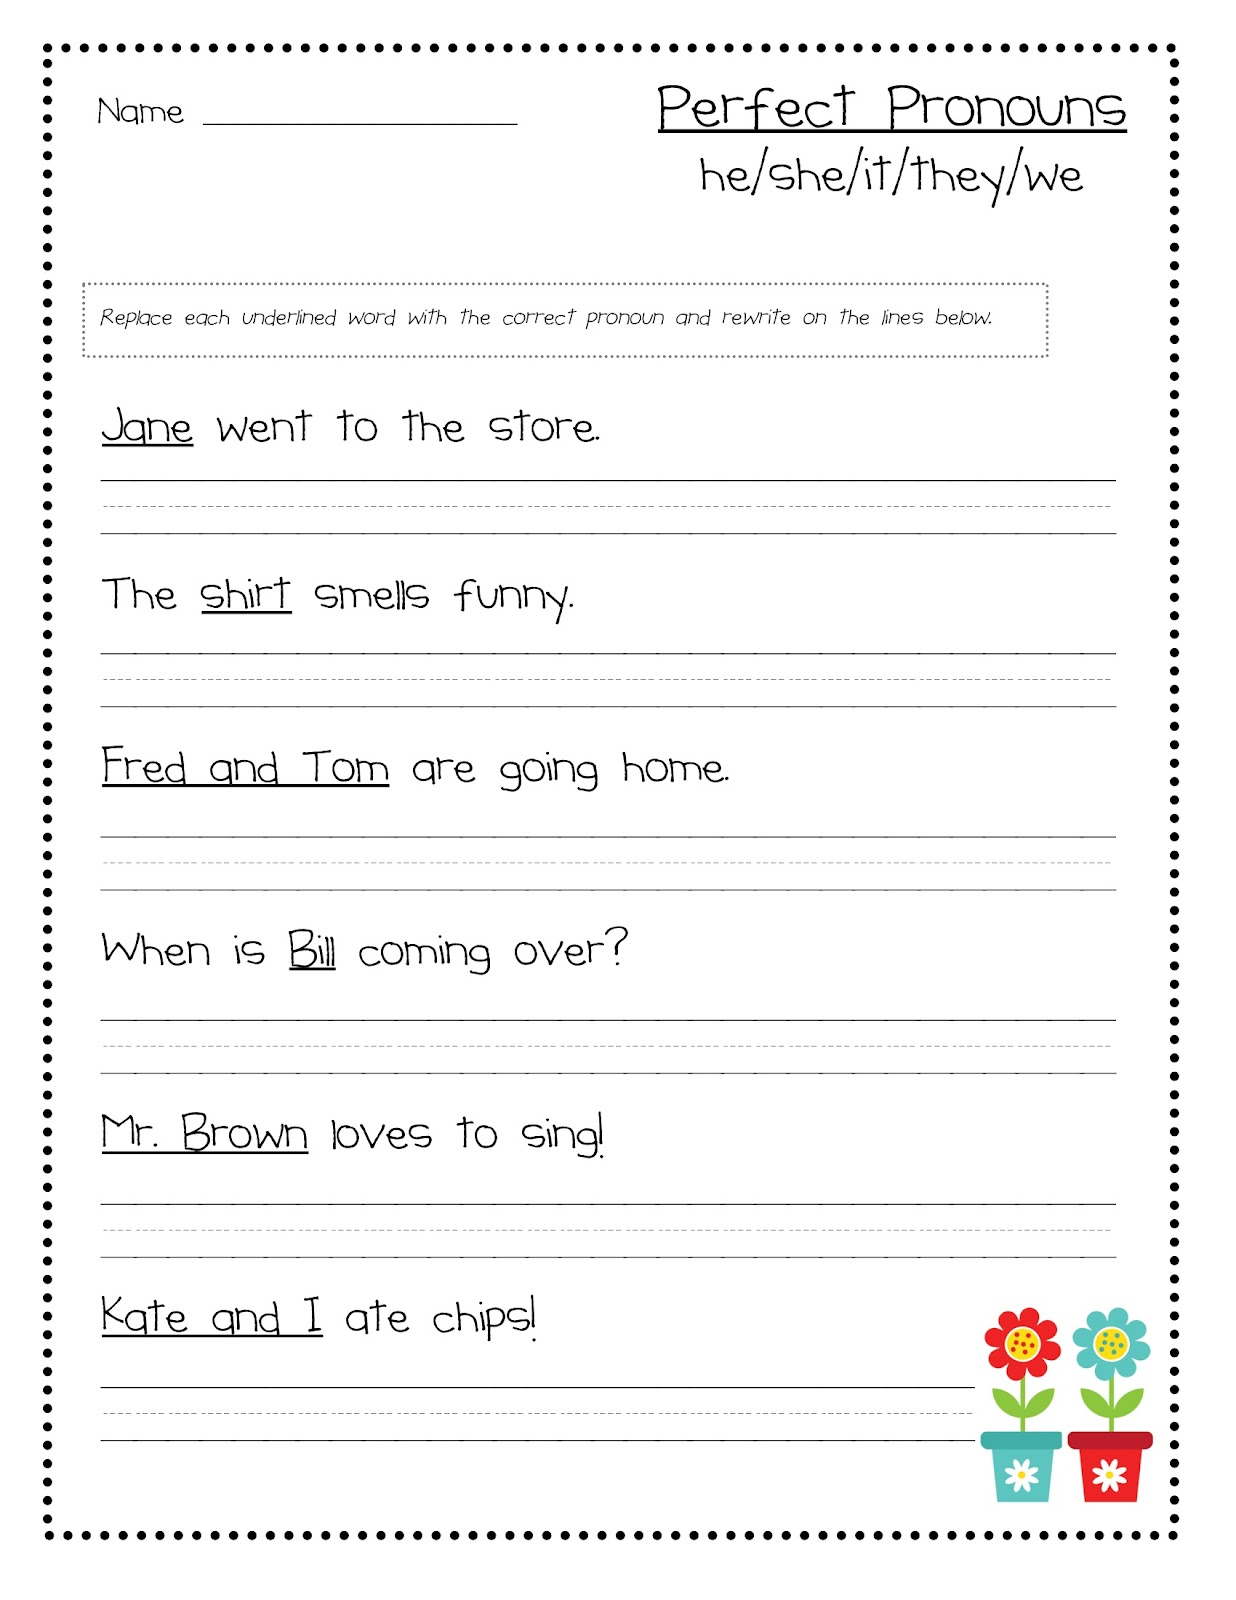 Worksheet On Pronouns I And Me